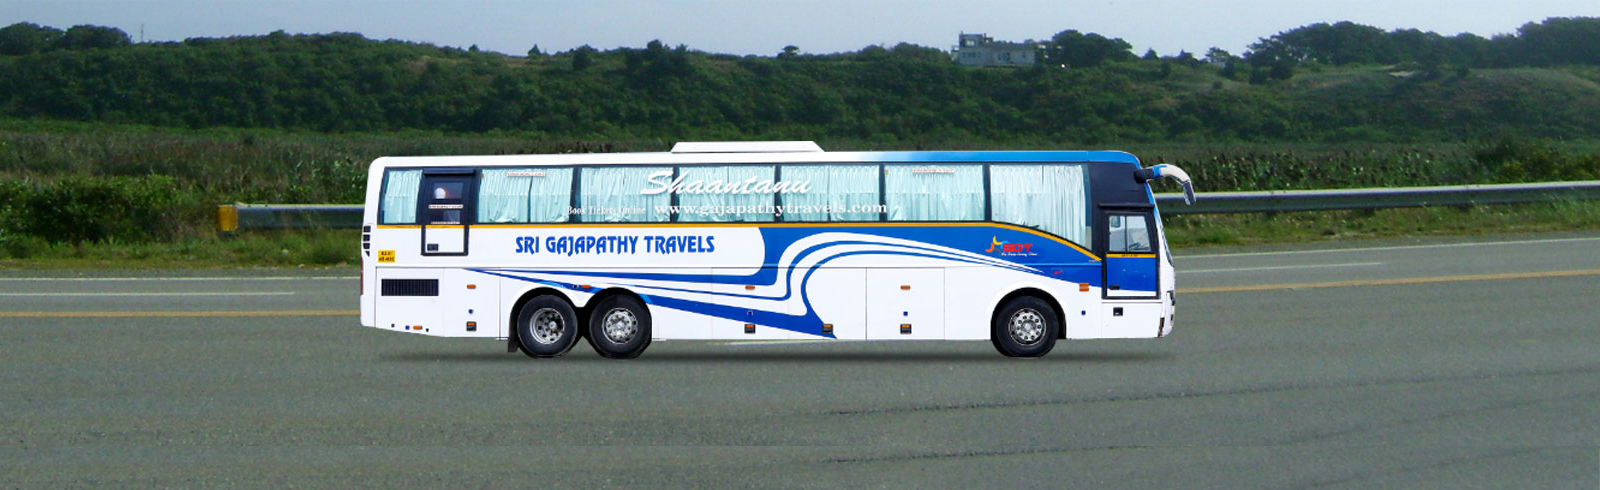 Bus Tickets | Cheap Bus Tickets | Sri Gajapathy Travels